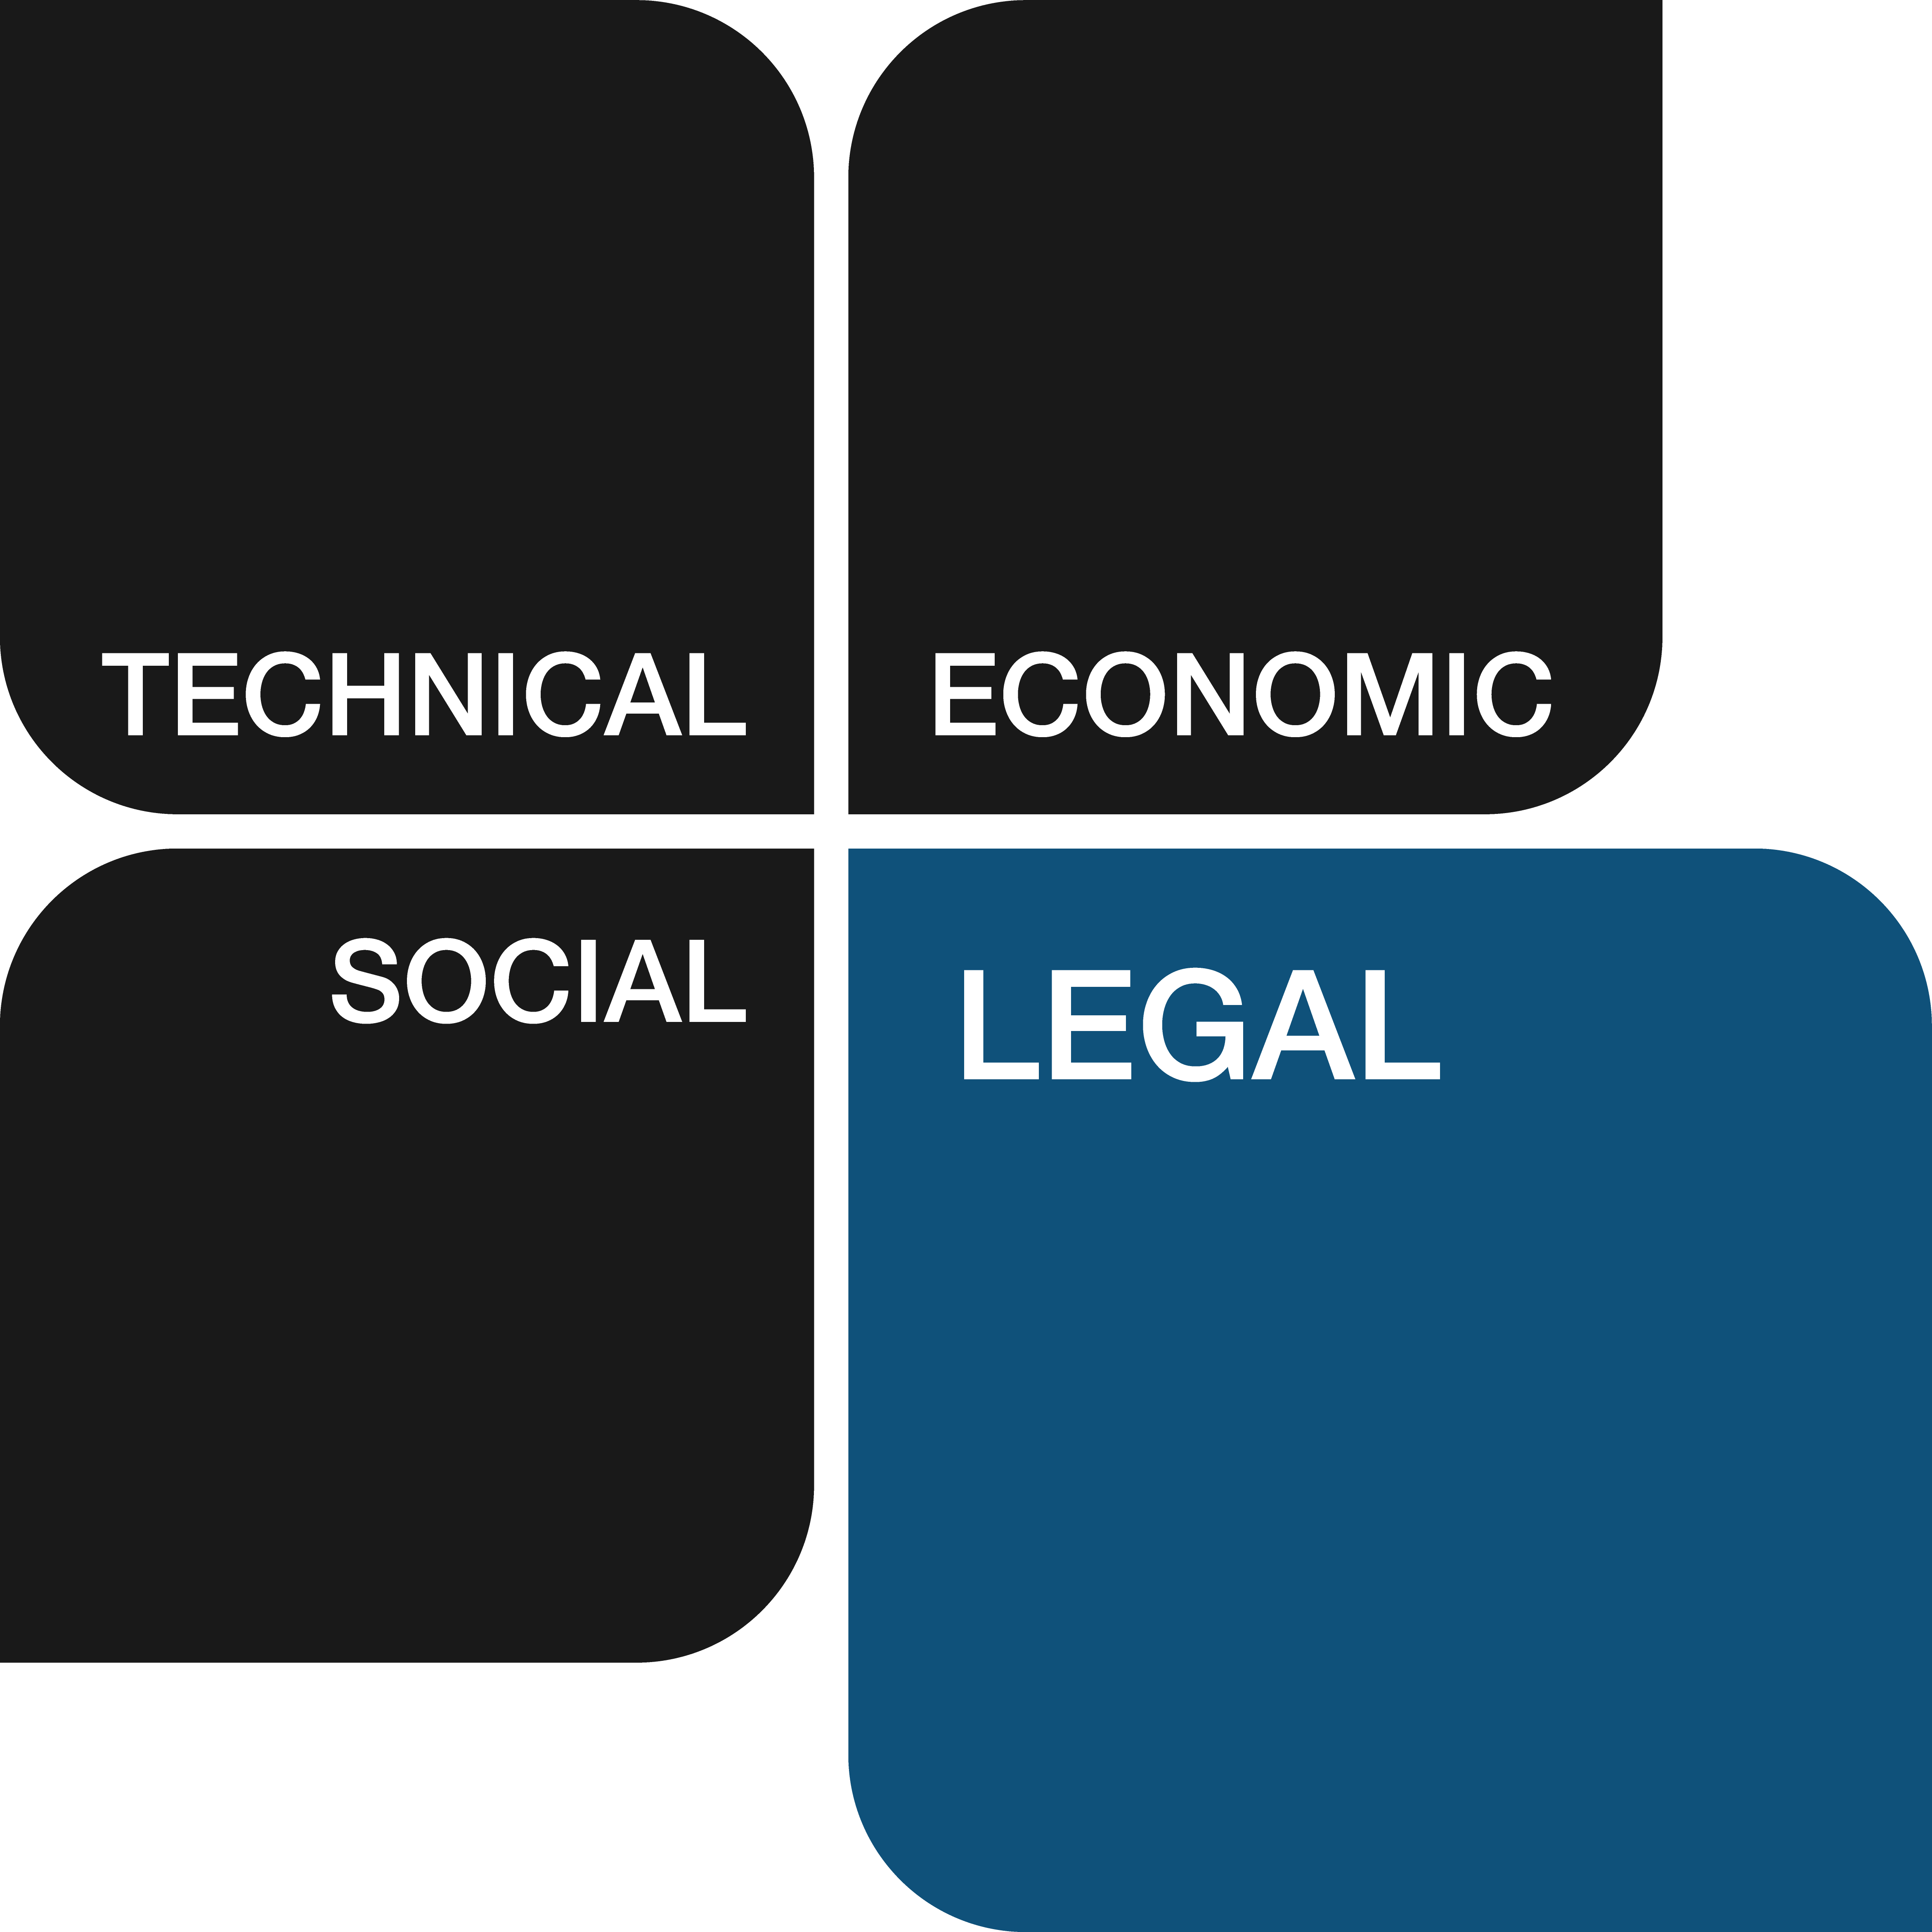 Technical, Economic, Social and Legal icon, Legal highlighted